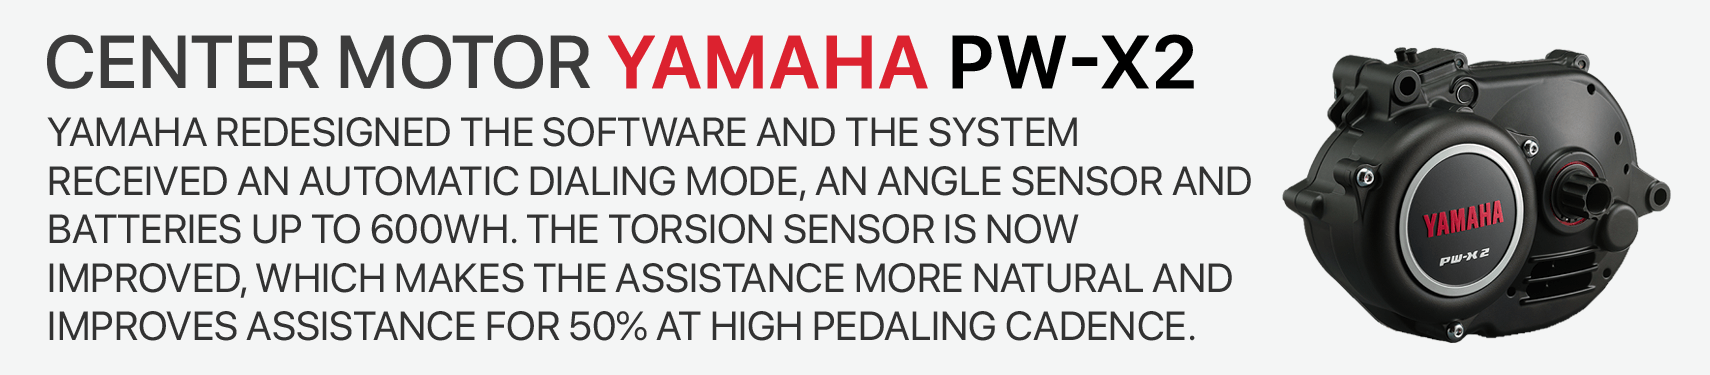 Yamaha redesigned the software and the system received an automatic dialing mode, an angle sensor and batteries up to 600Wh. the torsion sensor is NOW Improved, which makes the assistance more natural and  improves assistance for 50% at high pedaling cadence.